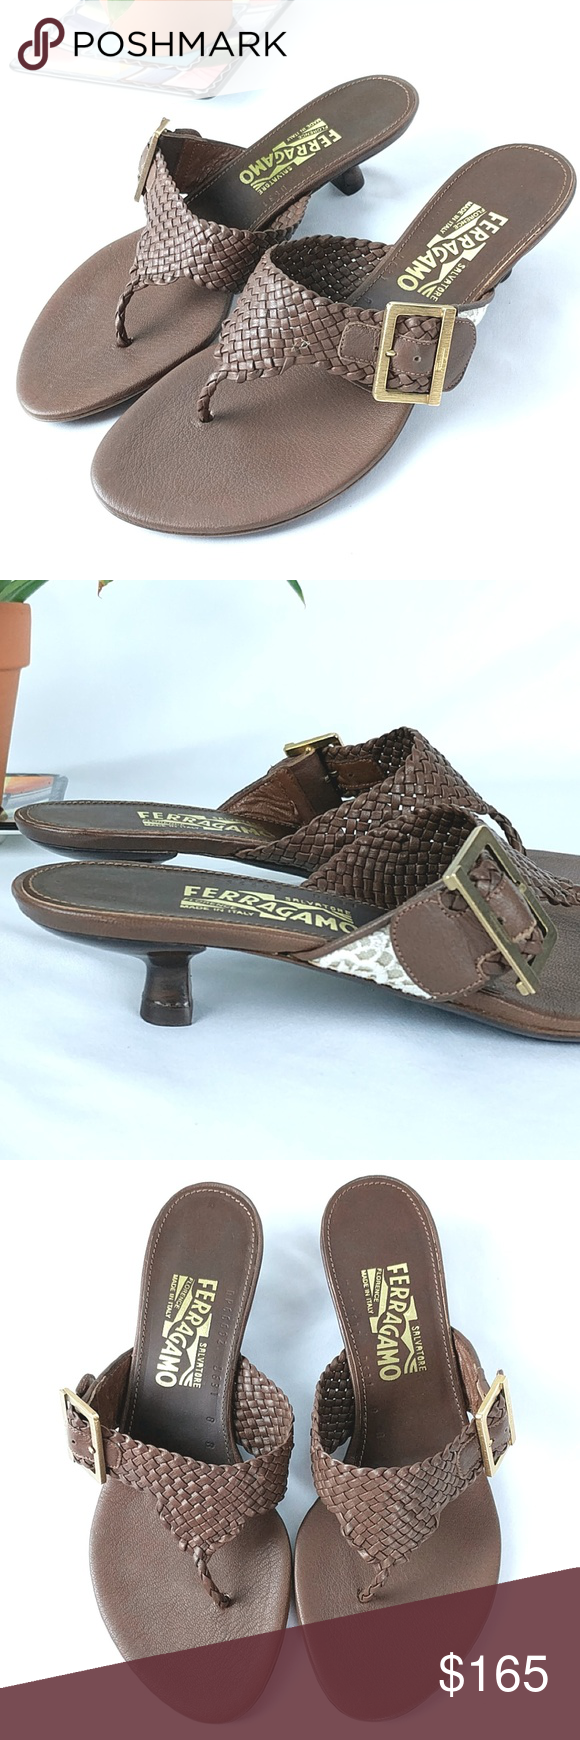 e33b6382501 NWOT Salvatore Ferragamo Woven Kitten Heel Sandal Salvatore Ferragamo Woven  Thong Kitten Heel Sandal Brown Leather with Cream Colored Lace Detail on  Strap ...